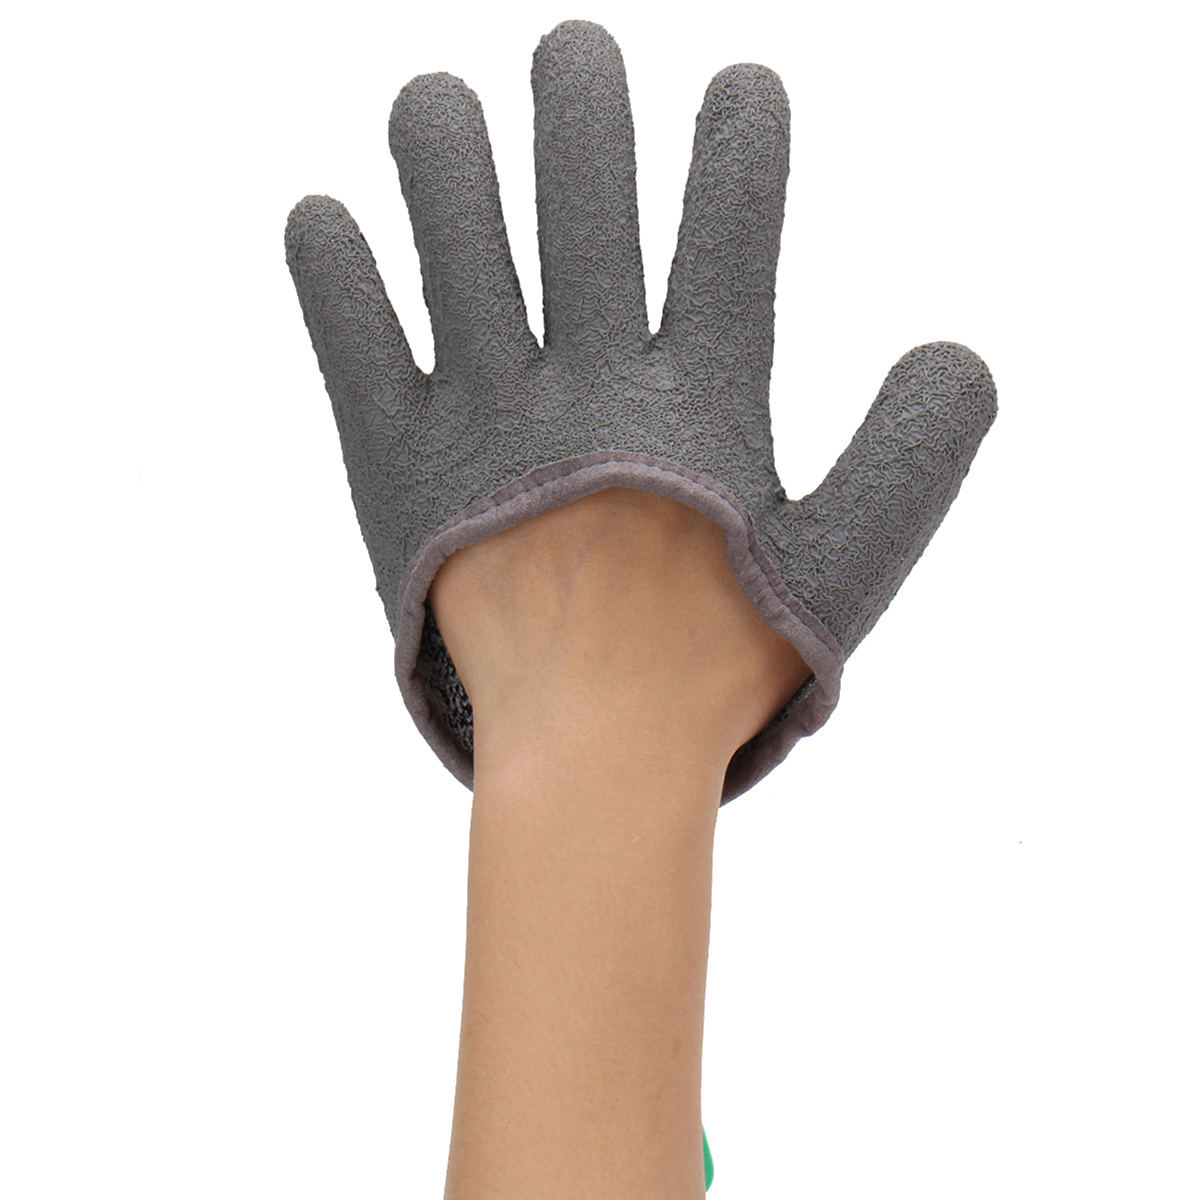 1pc M/L/XL Grey Left Cut Resistant Fishing Glove Protective Safety Gloves Knife Slash Proof Gloves